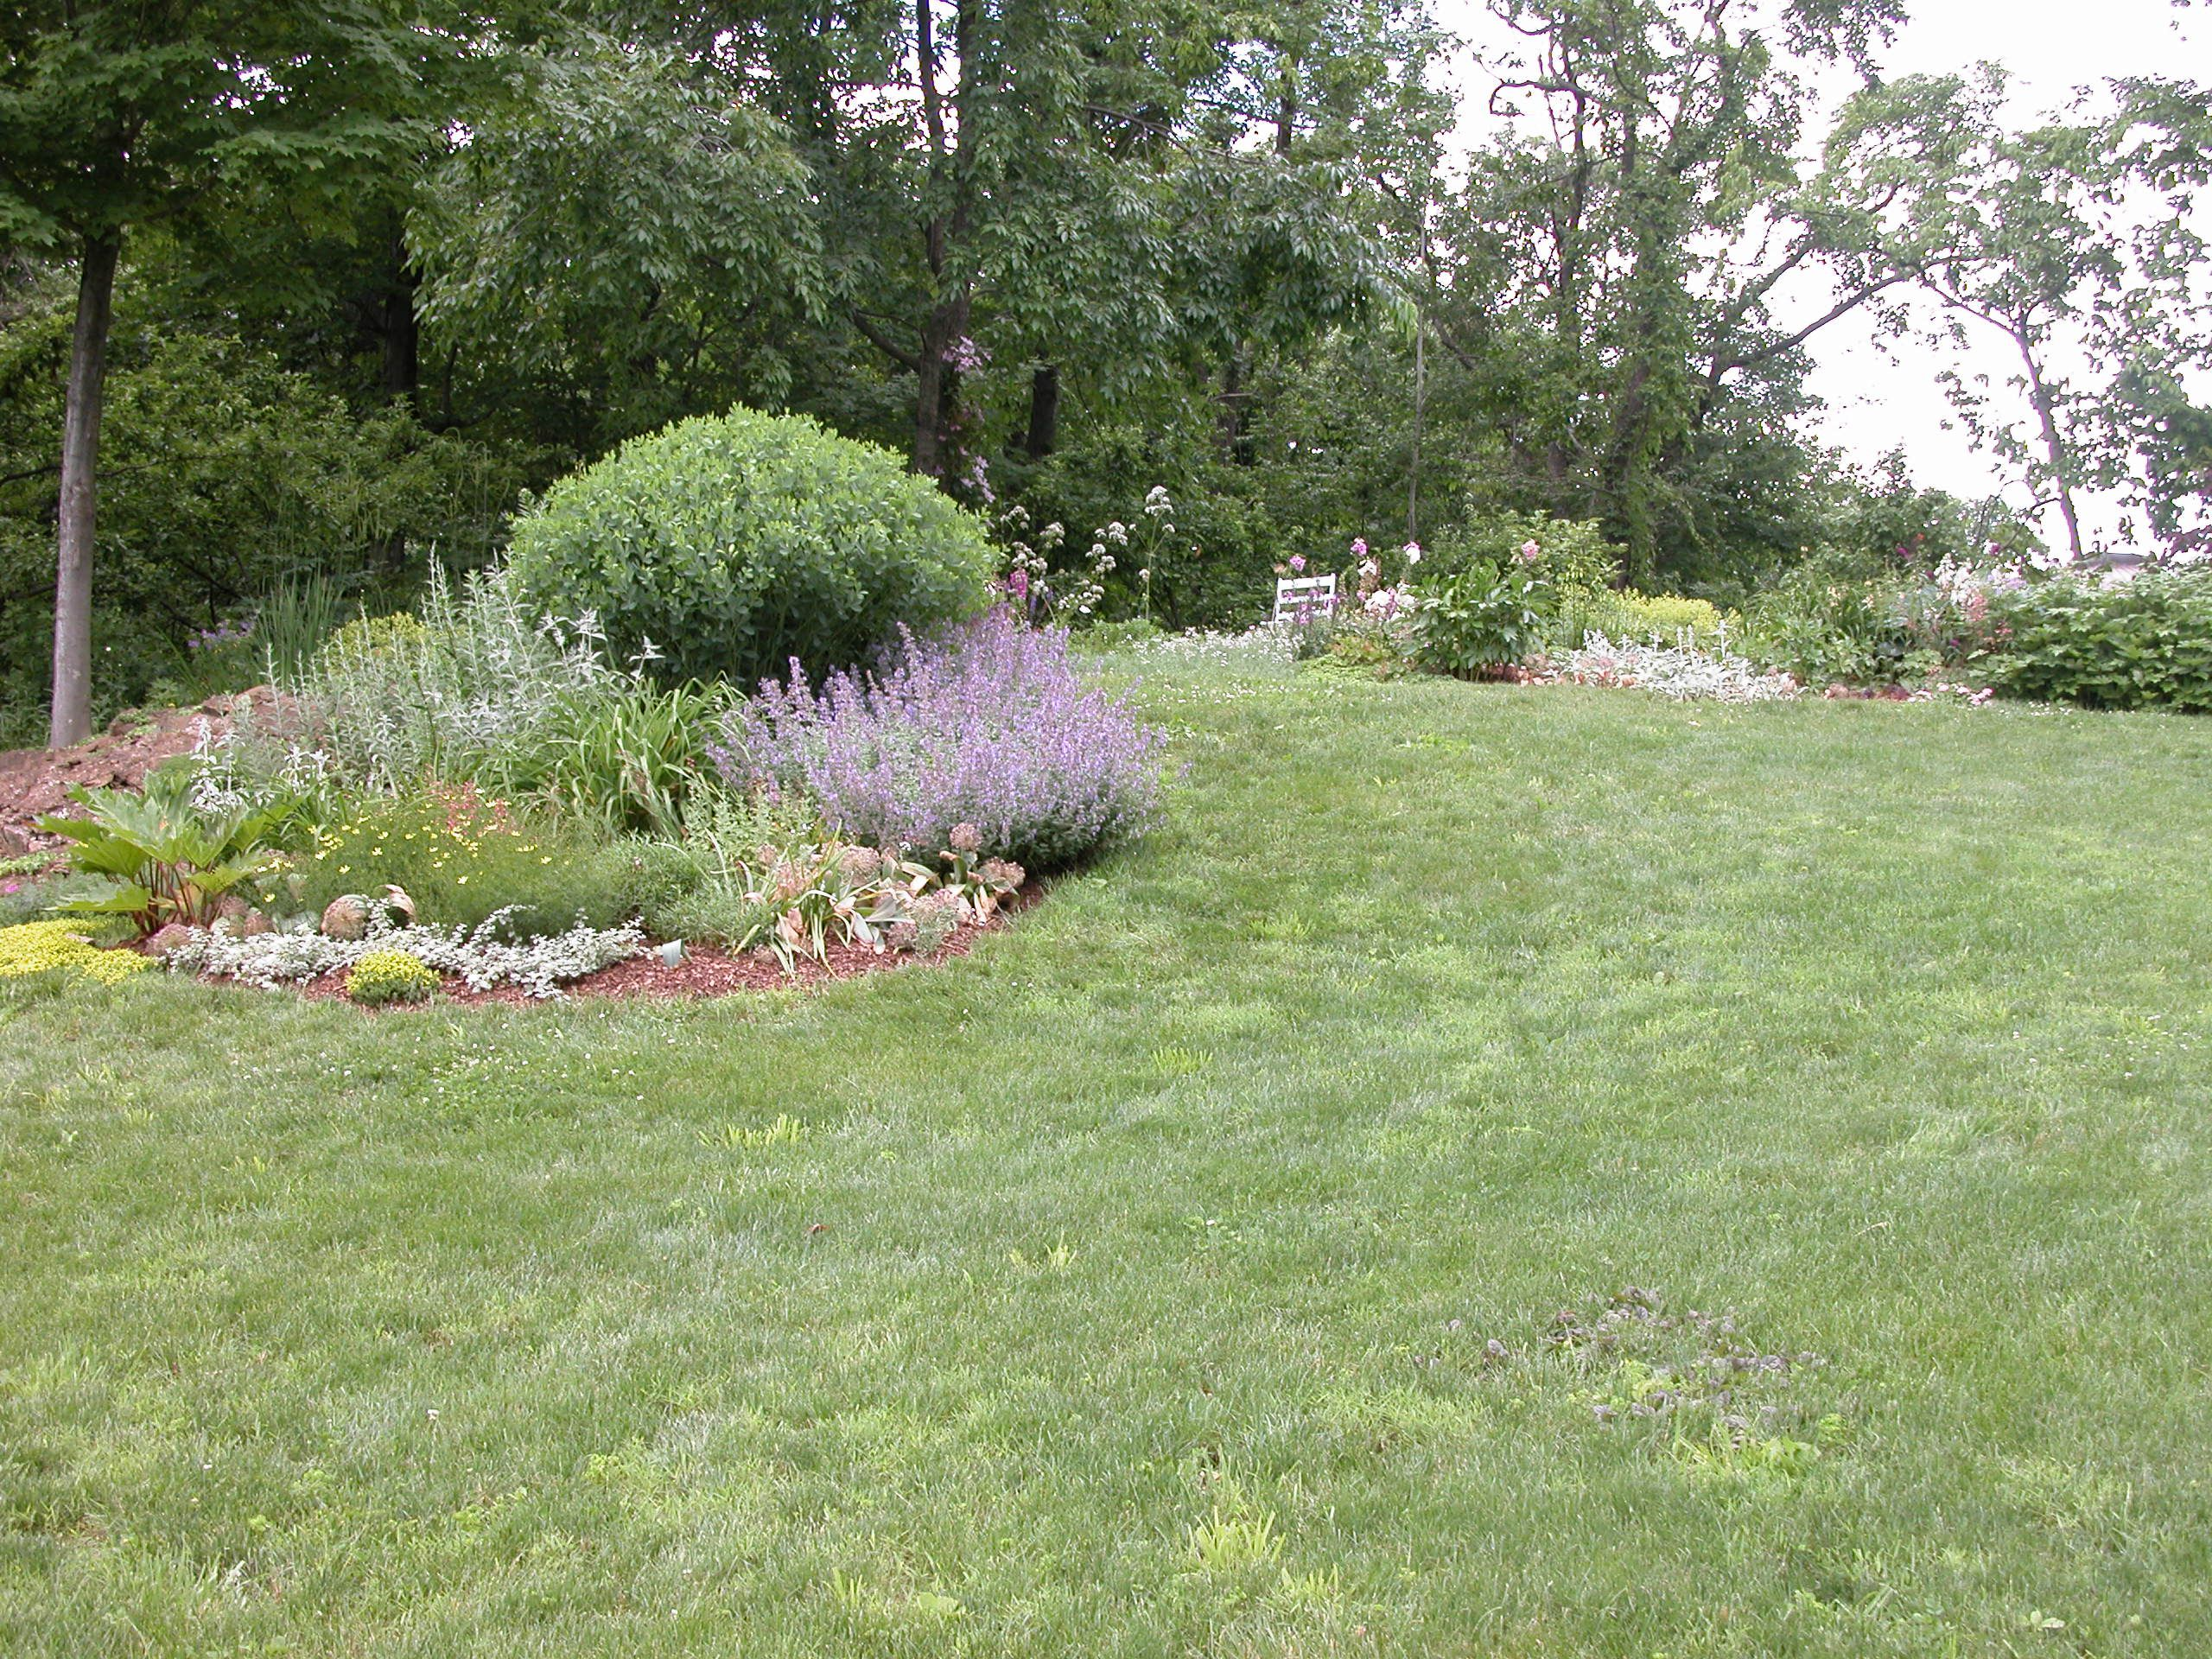 Garden bed in the middle of a yard